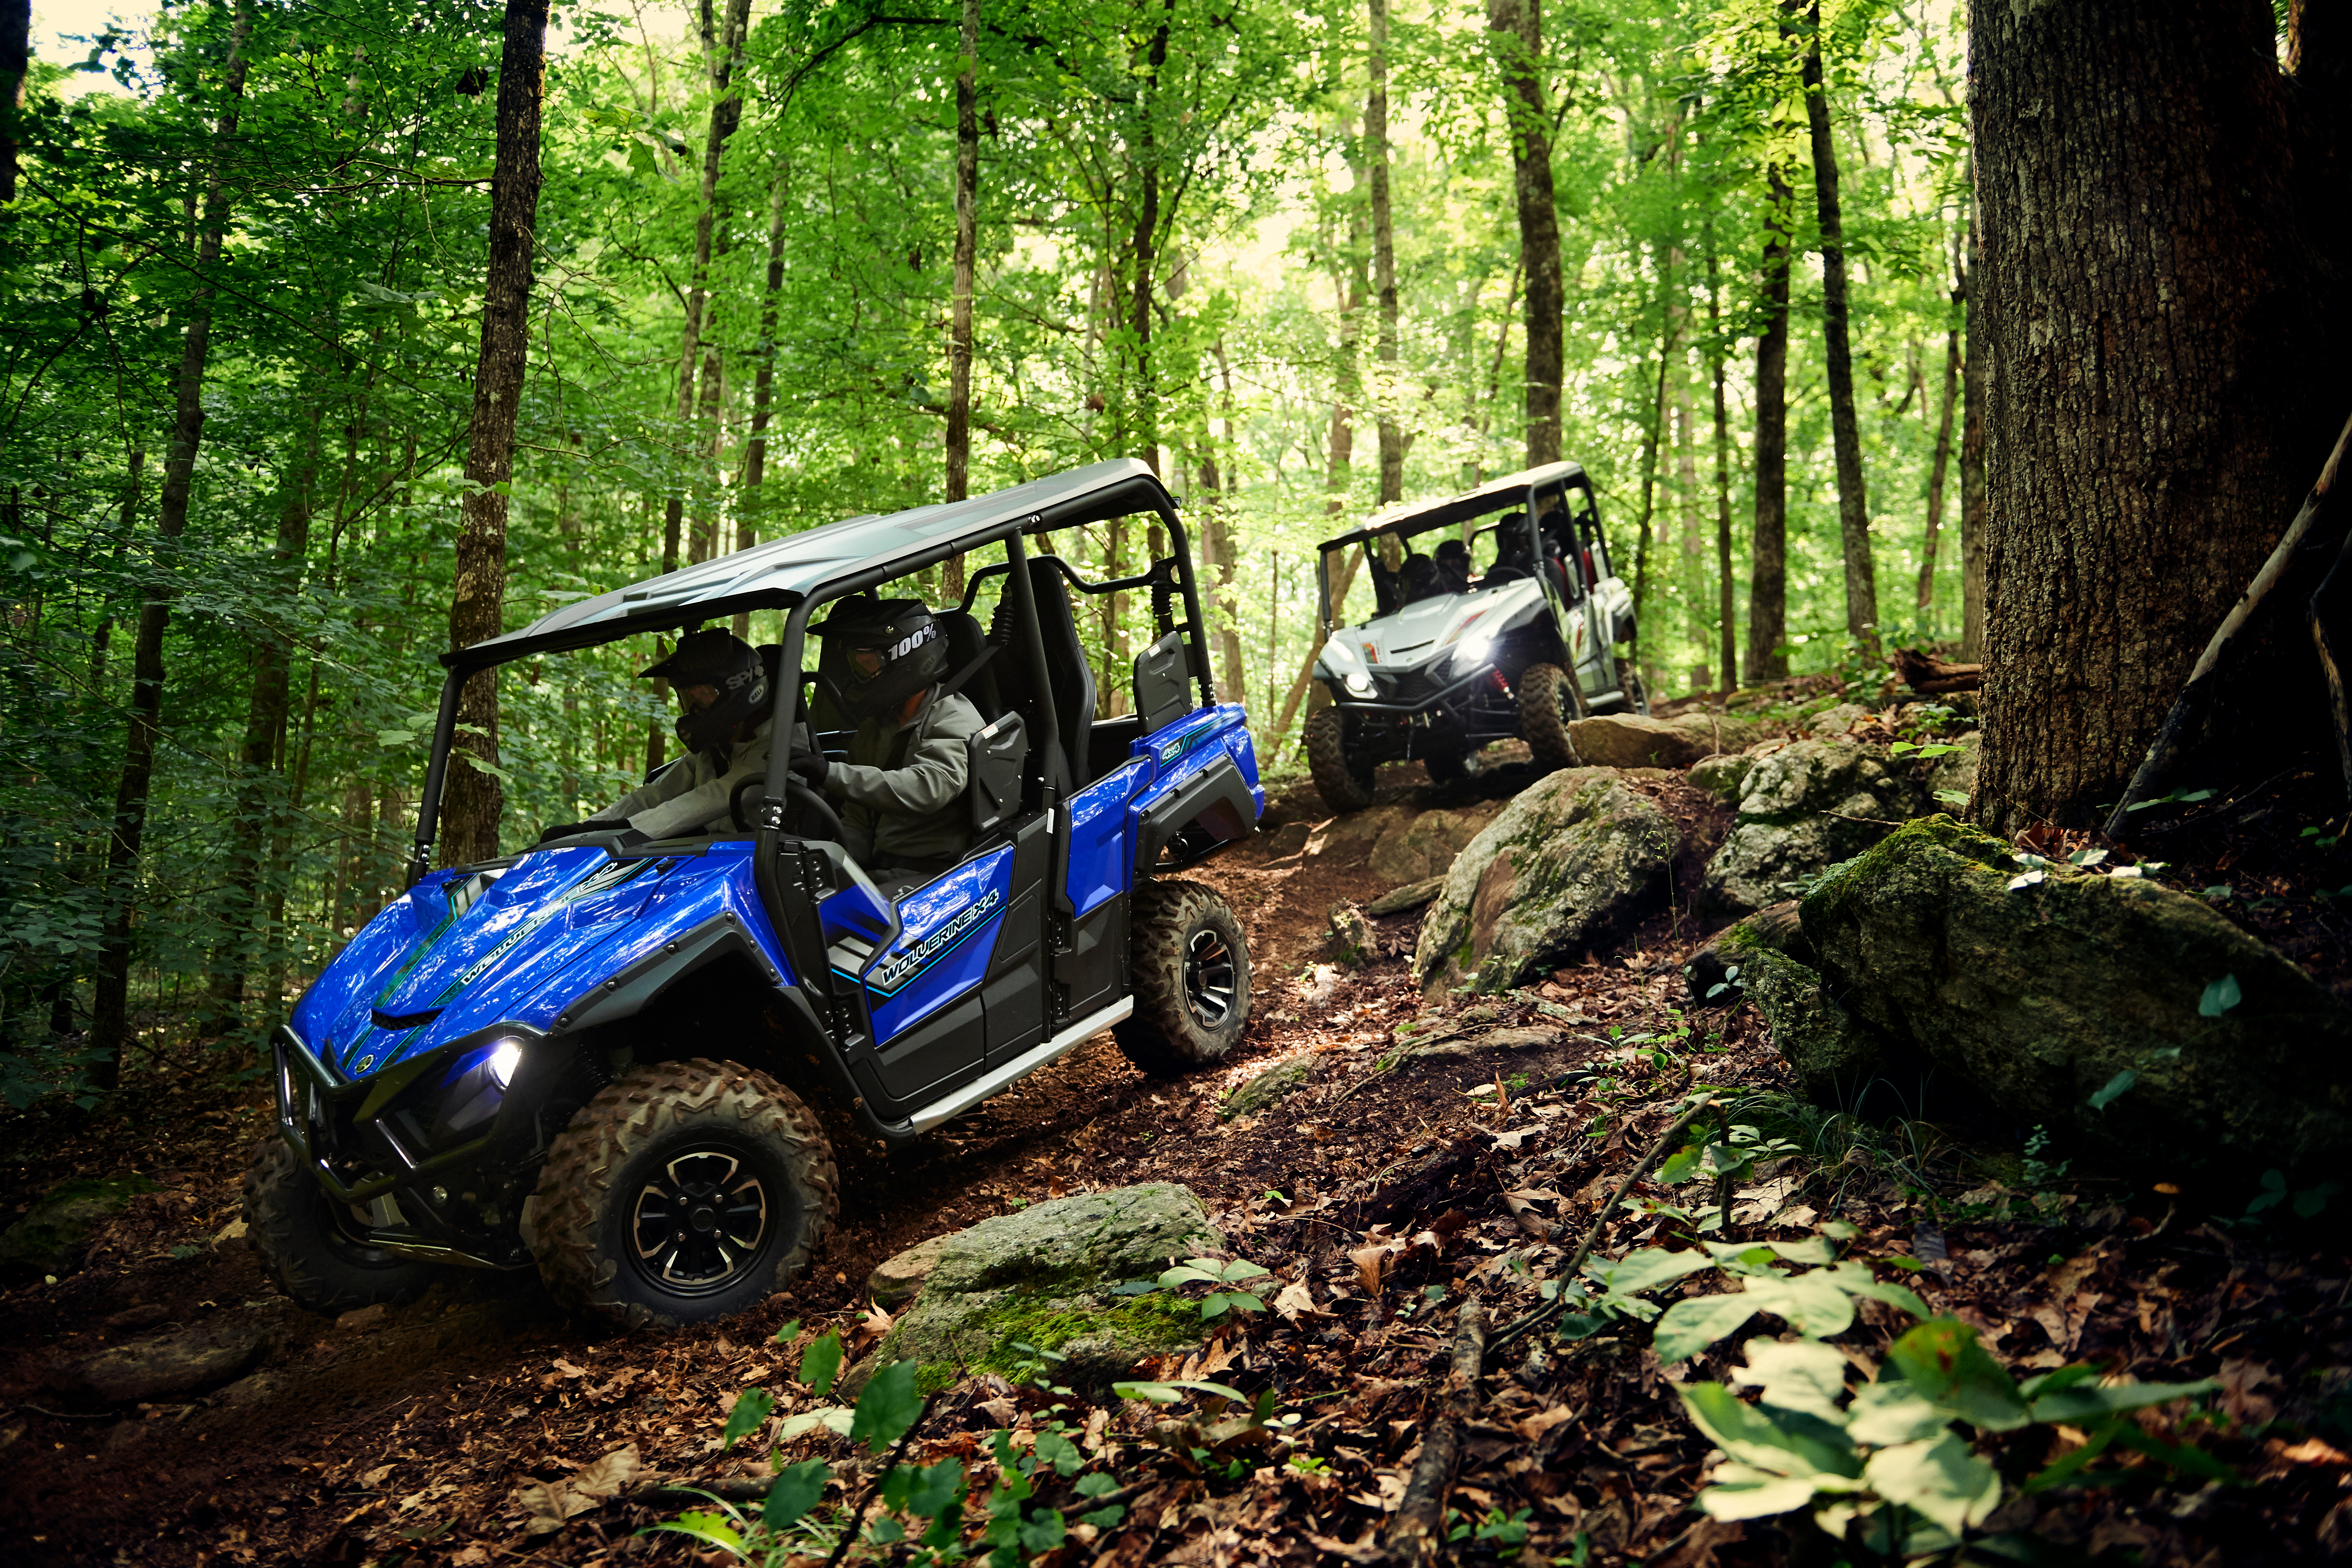 yamaha wolverine x4. \u201cthe wolverine x4 sets a new standard in recreational off-roading, combining yamaha\u0027s industry-leading durability and reliability with proven off-road yamaha